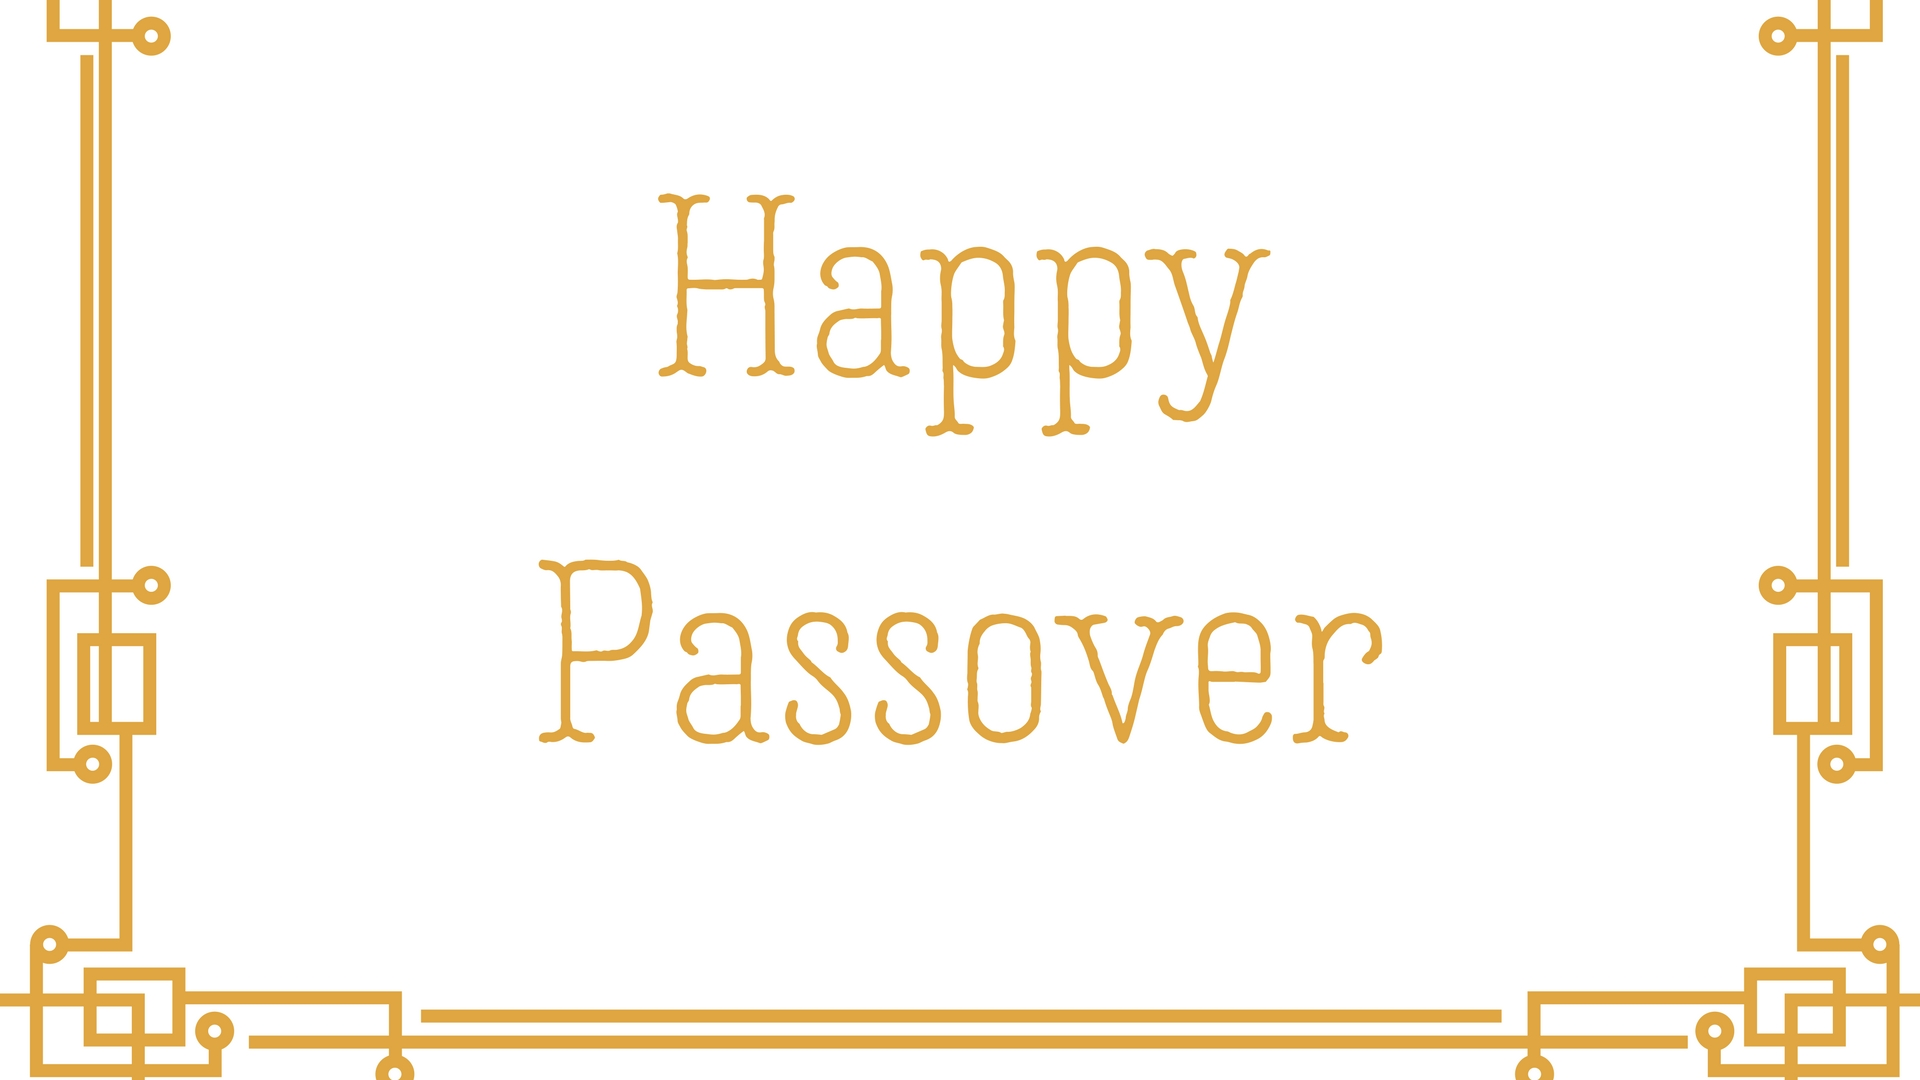 Happy Passover Rectangle Frame Greeting Card Postcard 9